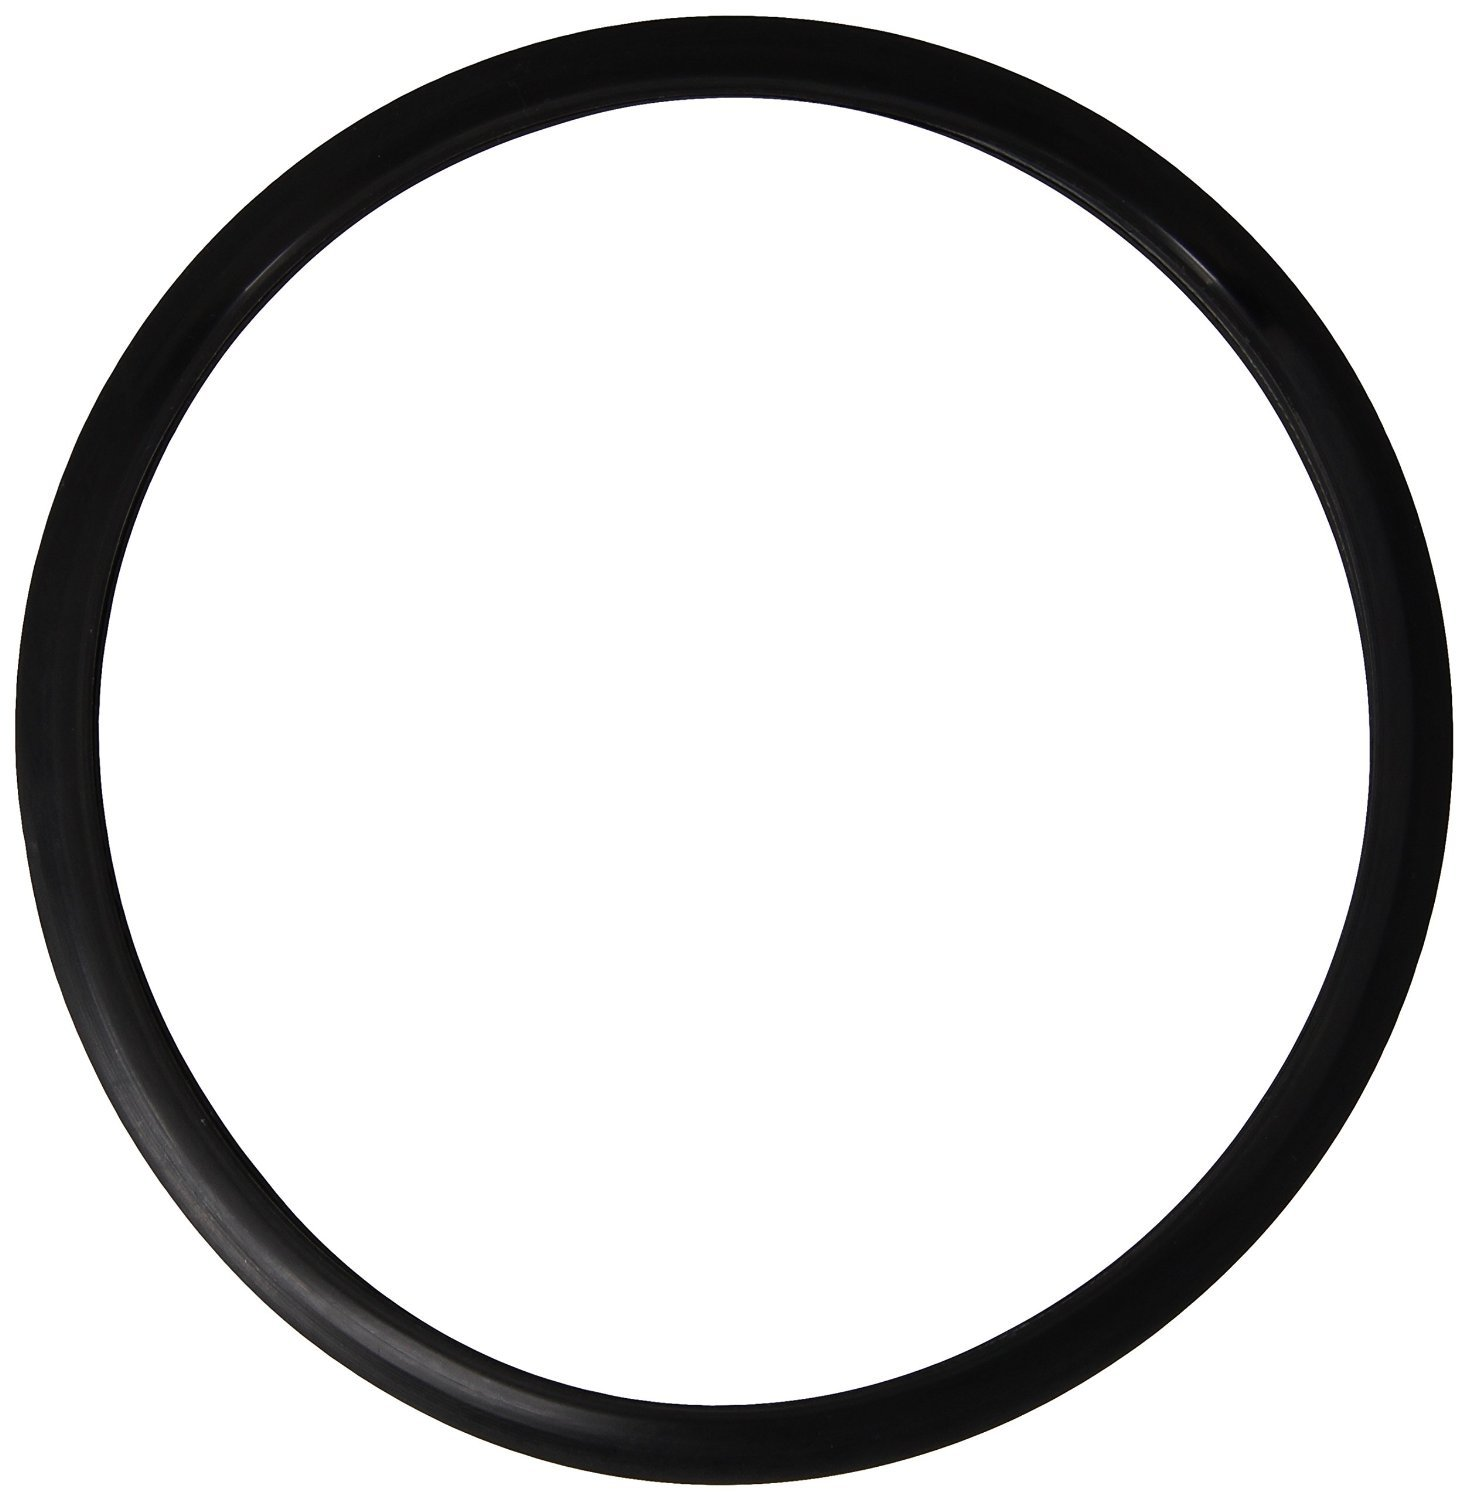 Prestige Sealing Ring Gasket for Popular 7.5/8.5/10/12-Liter Senior Deep Pan and 7.5-Liter Deluxe+ Aluminum & Hard Anodised Pressure Cookers, 10.5-Inch